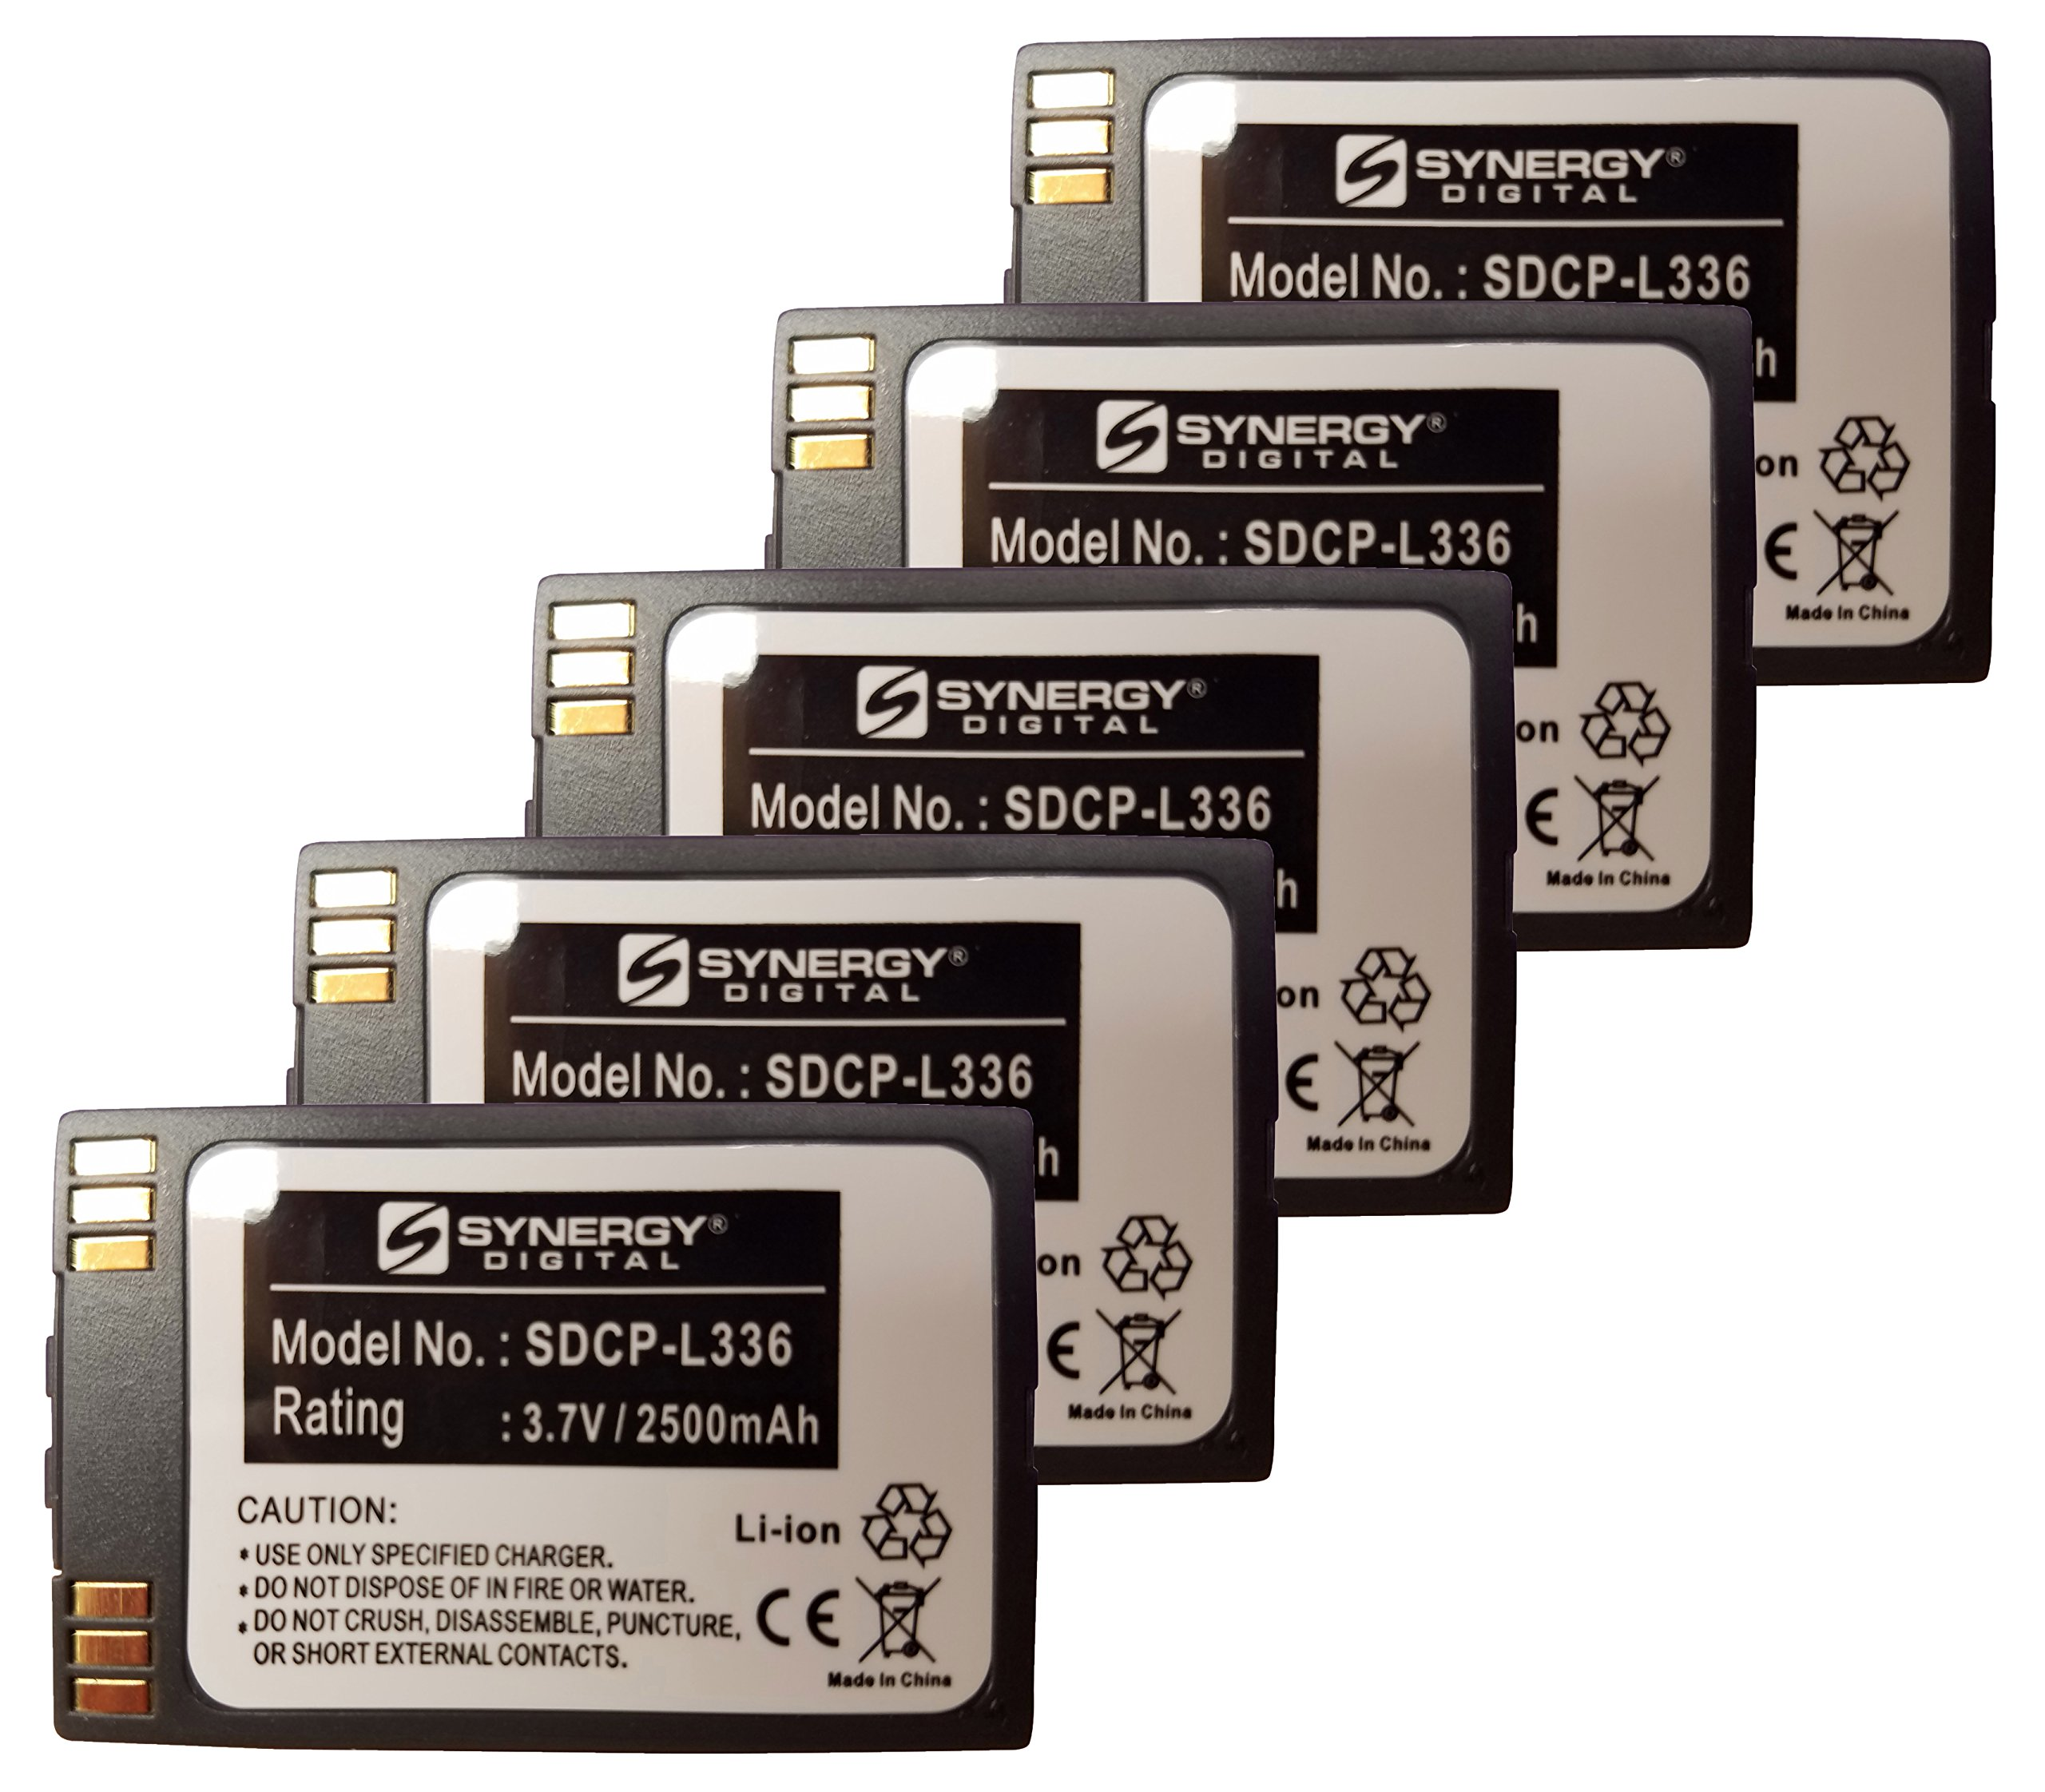 SPECTRALINK 6020 Cordless Phone Battery Combo-Pack includes: 5 x SDCP-L336 Batteries